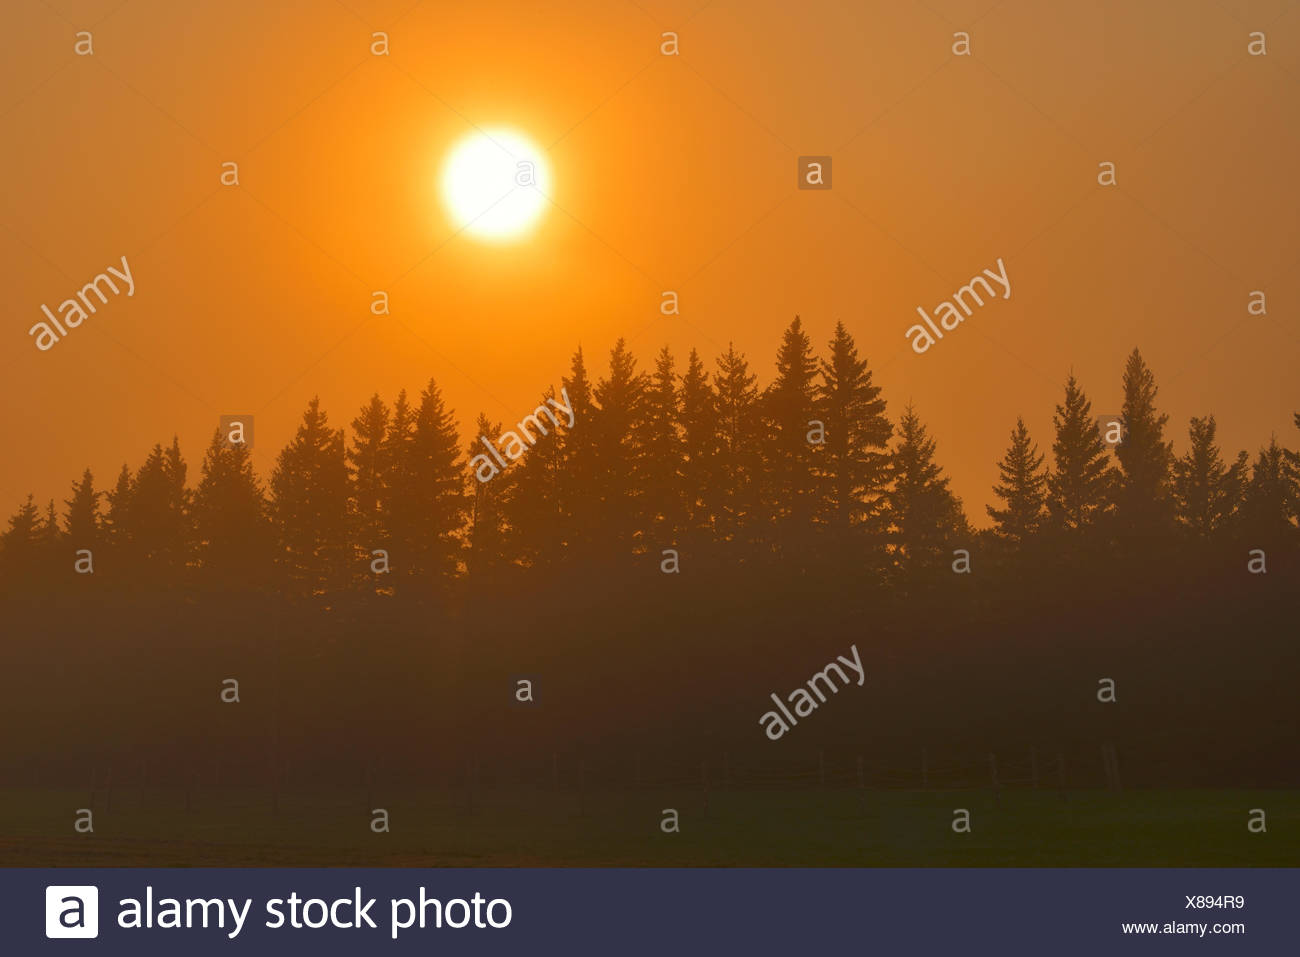 Morning fog and evergreen trees trees; coniferous; shelterbelt Argyle Manitoba Canada - Stock Image